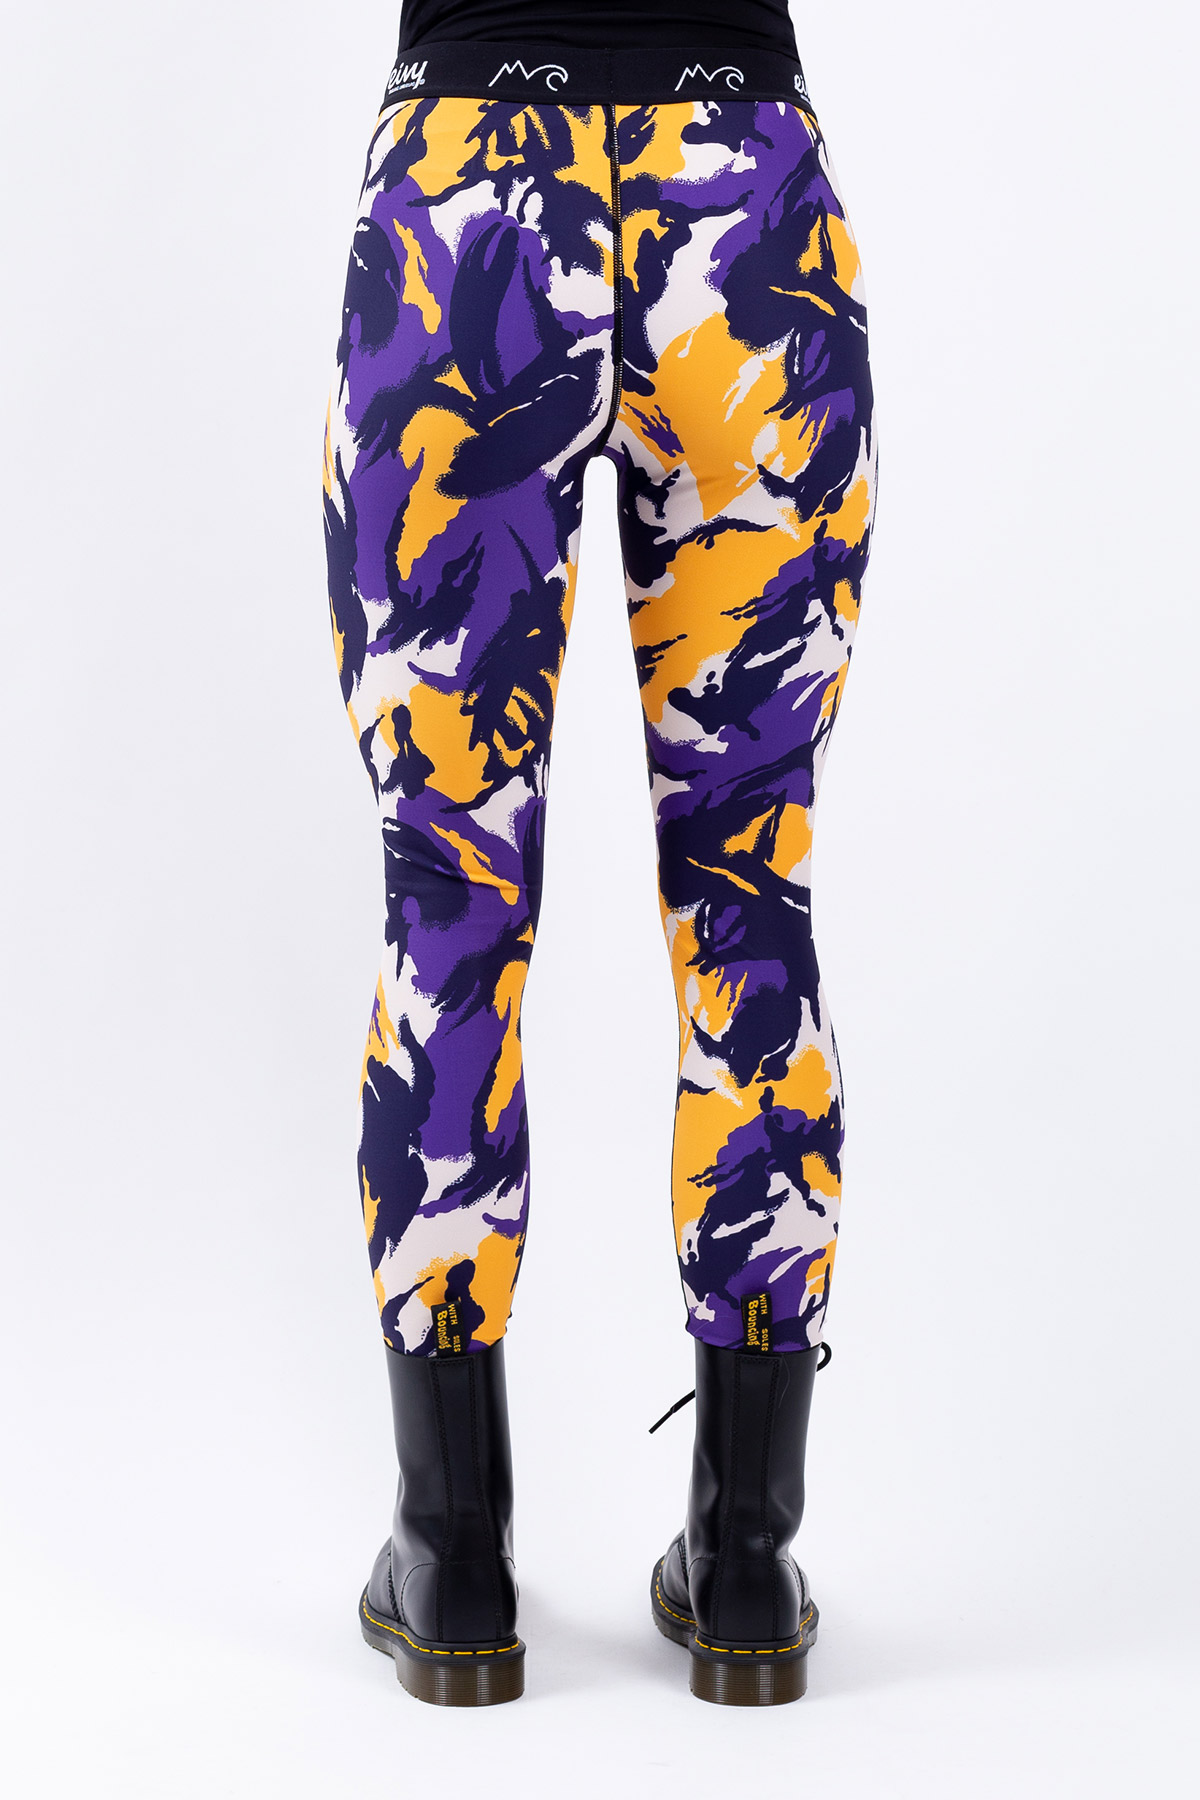 Underställ | Icecold Tights - Mountain Splash Purple | XS